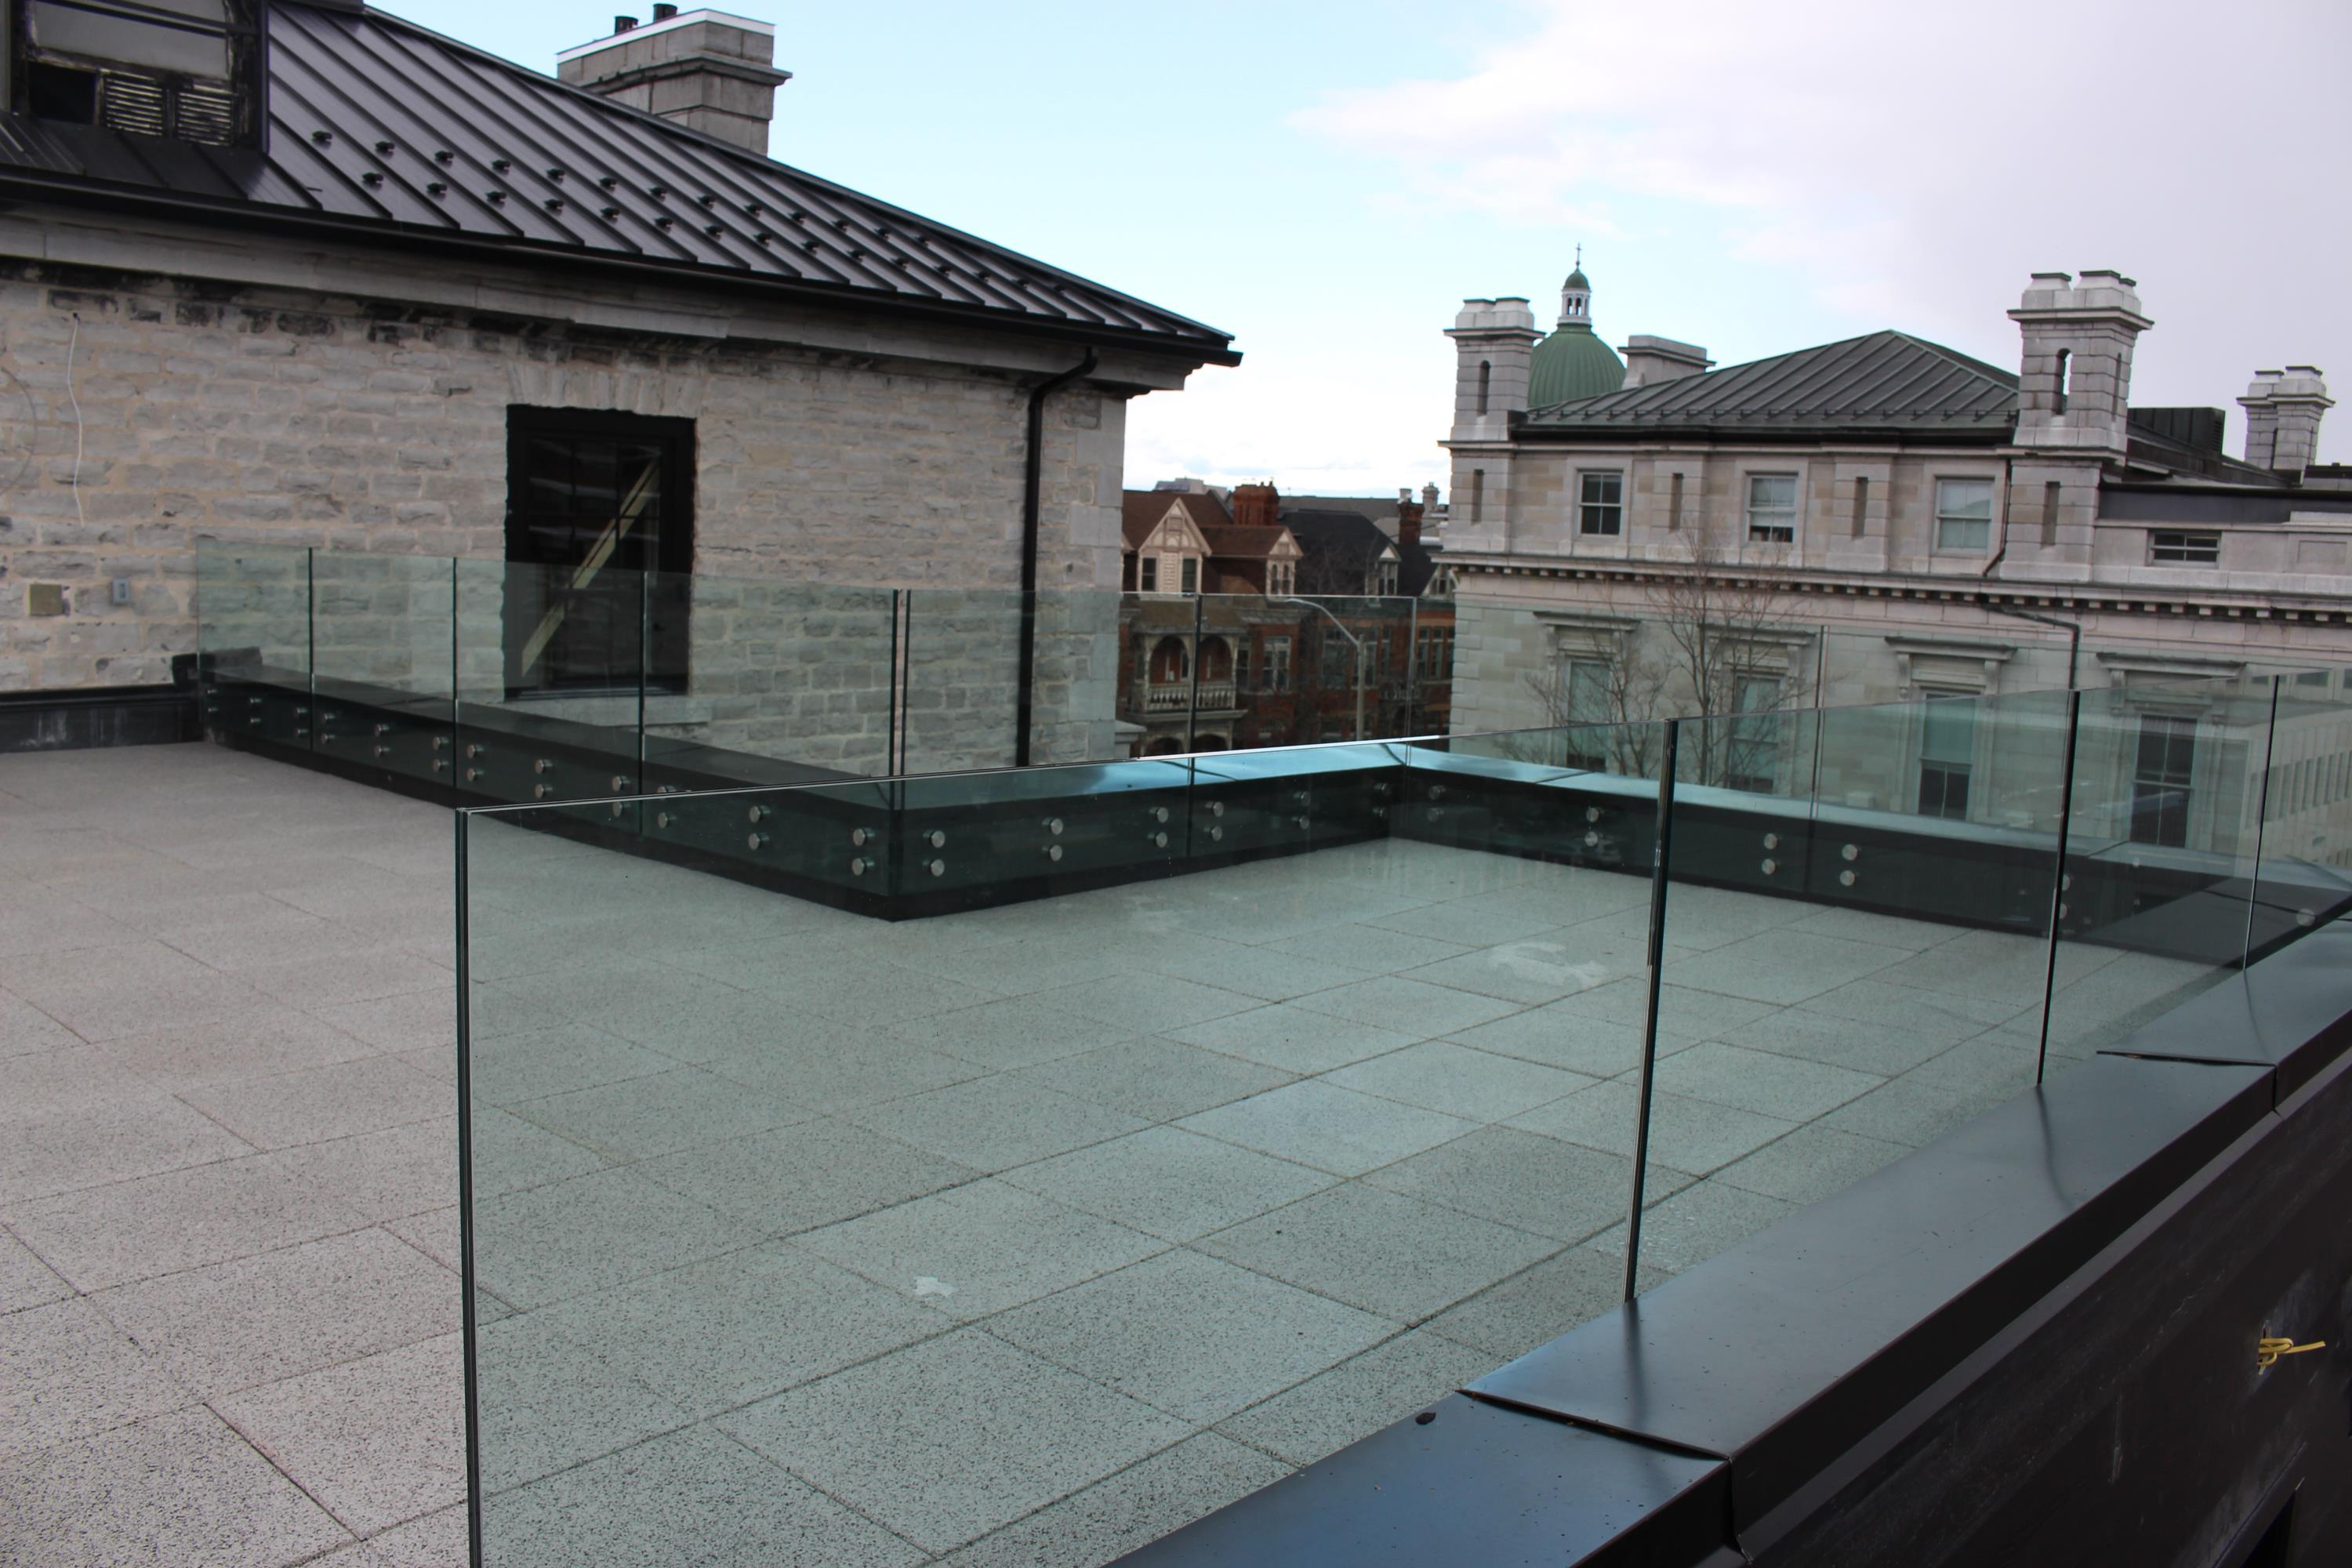 Rooftop Patio Area For Residents to use in this High Rise Apartment Building